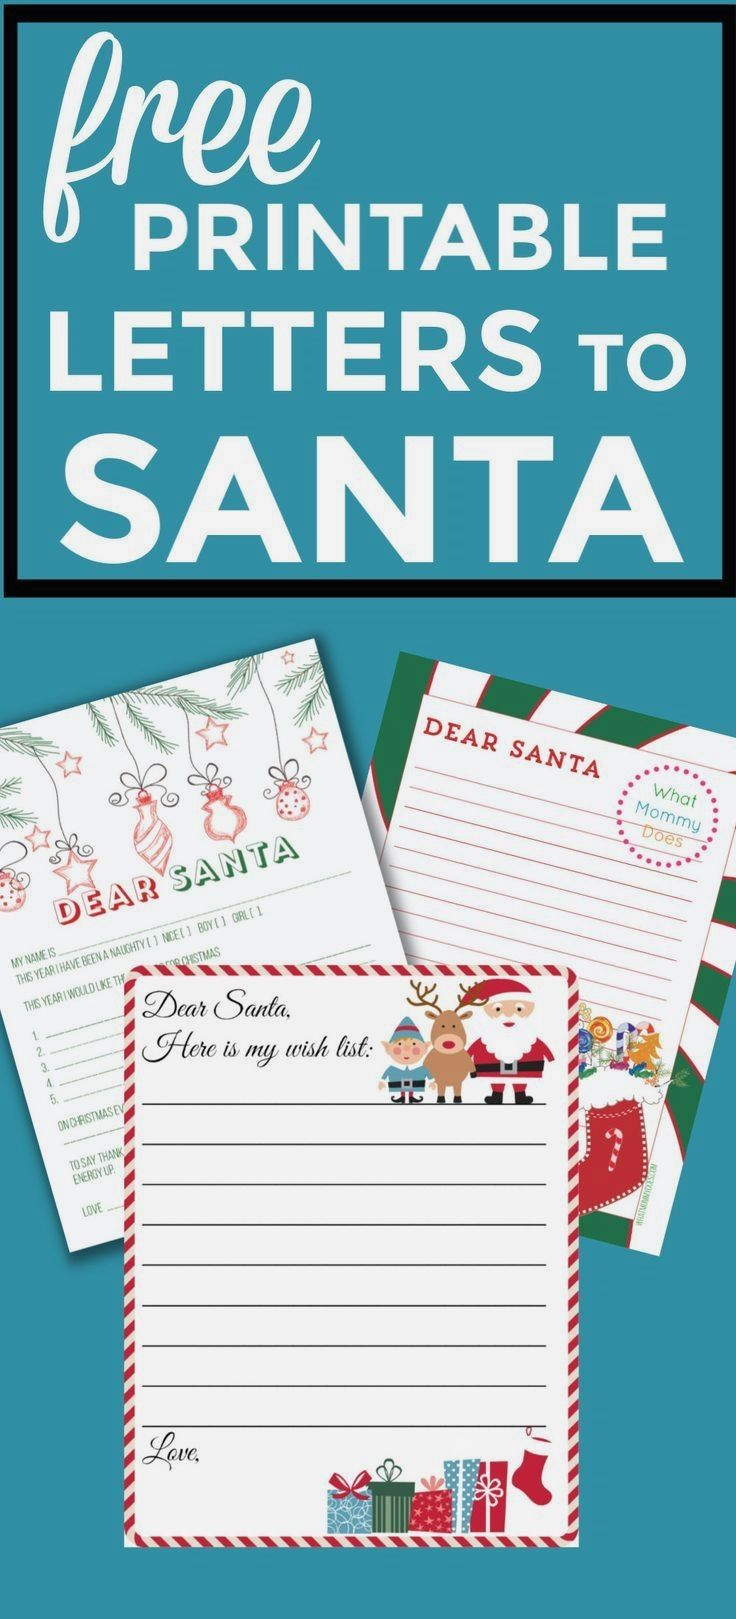 Free Holiday Christmas Newsletter Template in 2020